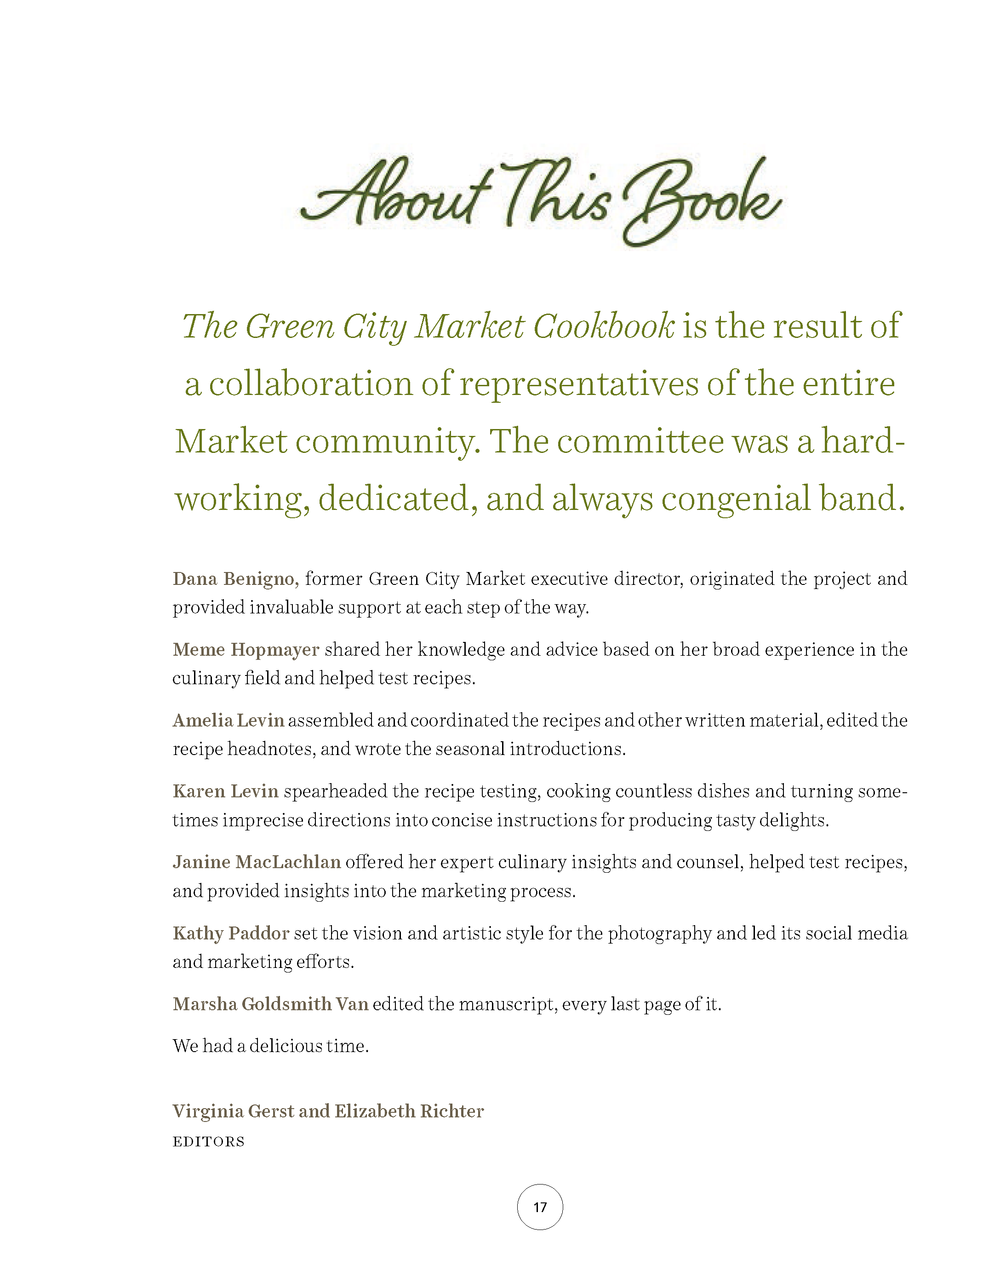 Green City Market Cookbook_Page_05.png